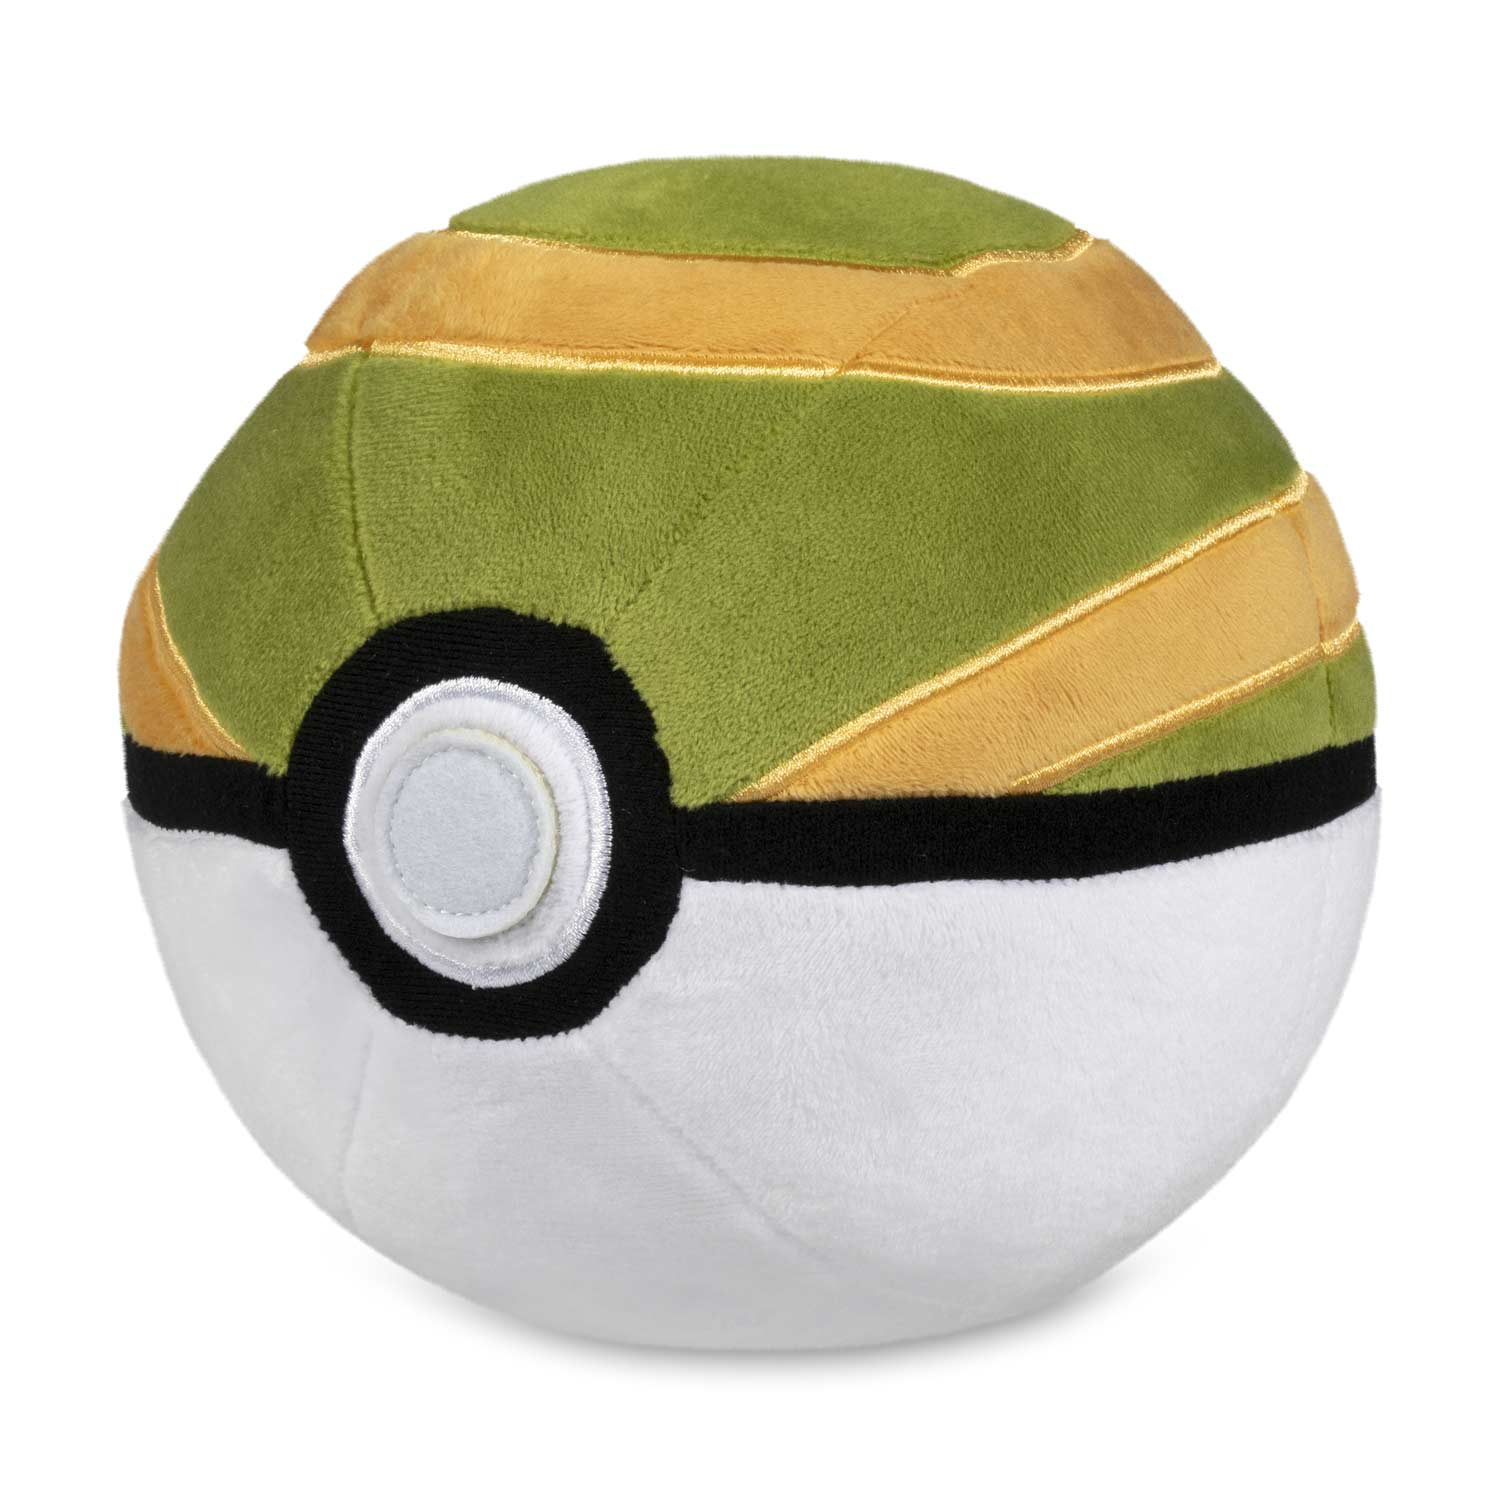 Super Nest Ball Poke Plush 7 In Gmtry Best Dining Table And Chair Ideas Images Gmtryco